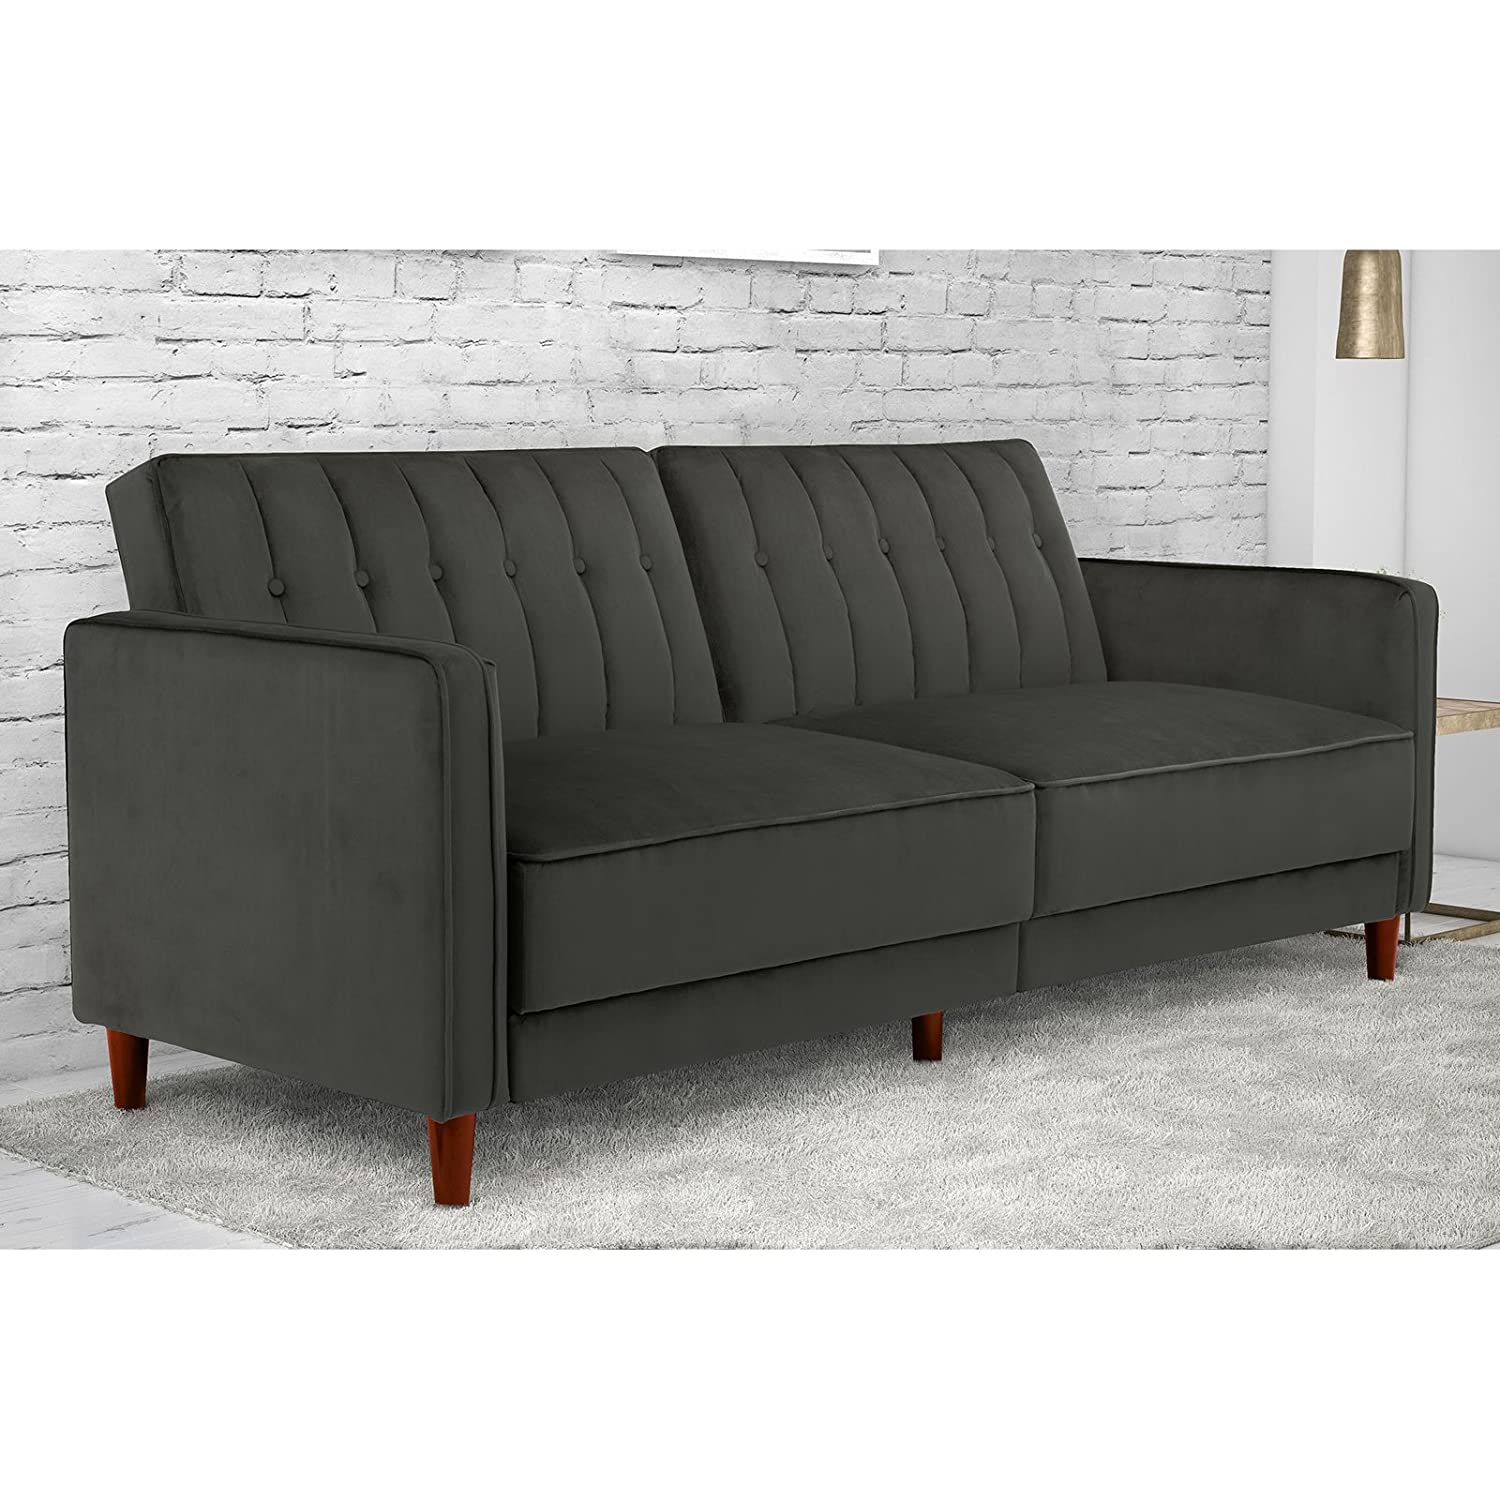 Amazon DHP Pin Velvet Convertible Sleeper Sofa in Tan